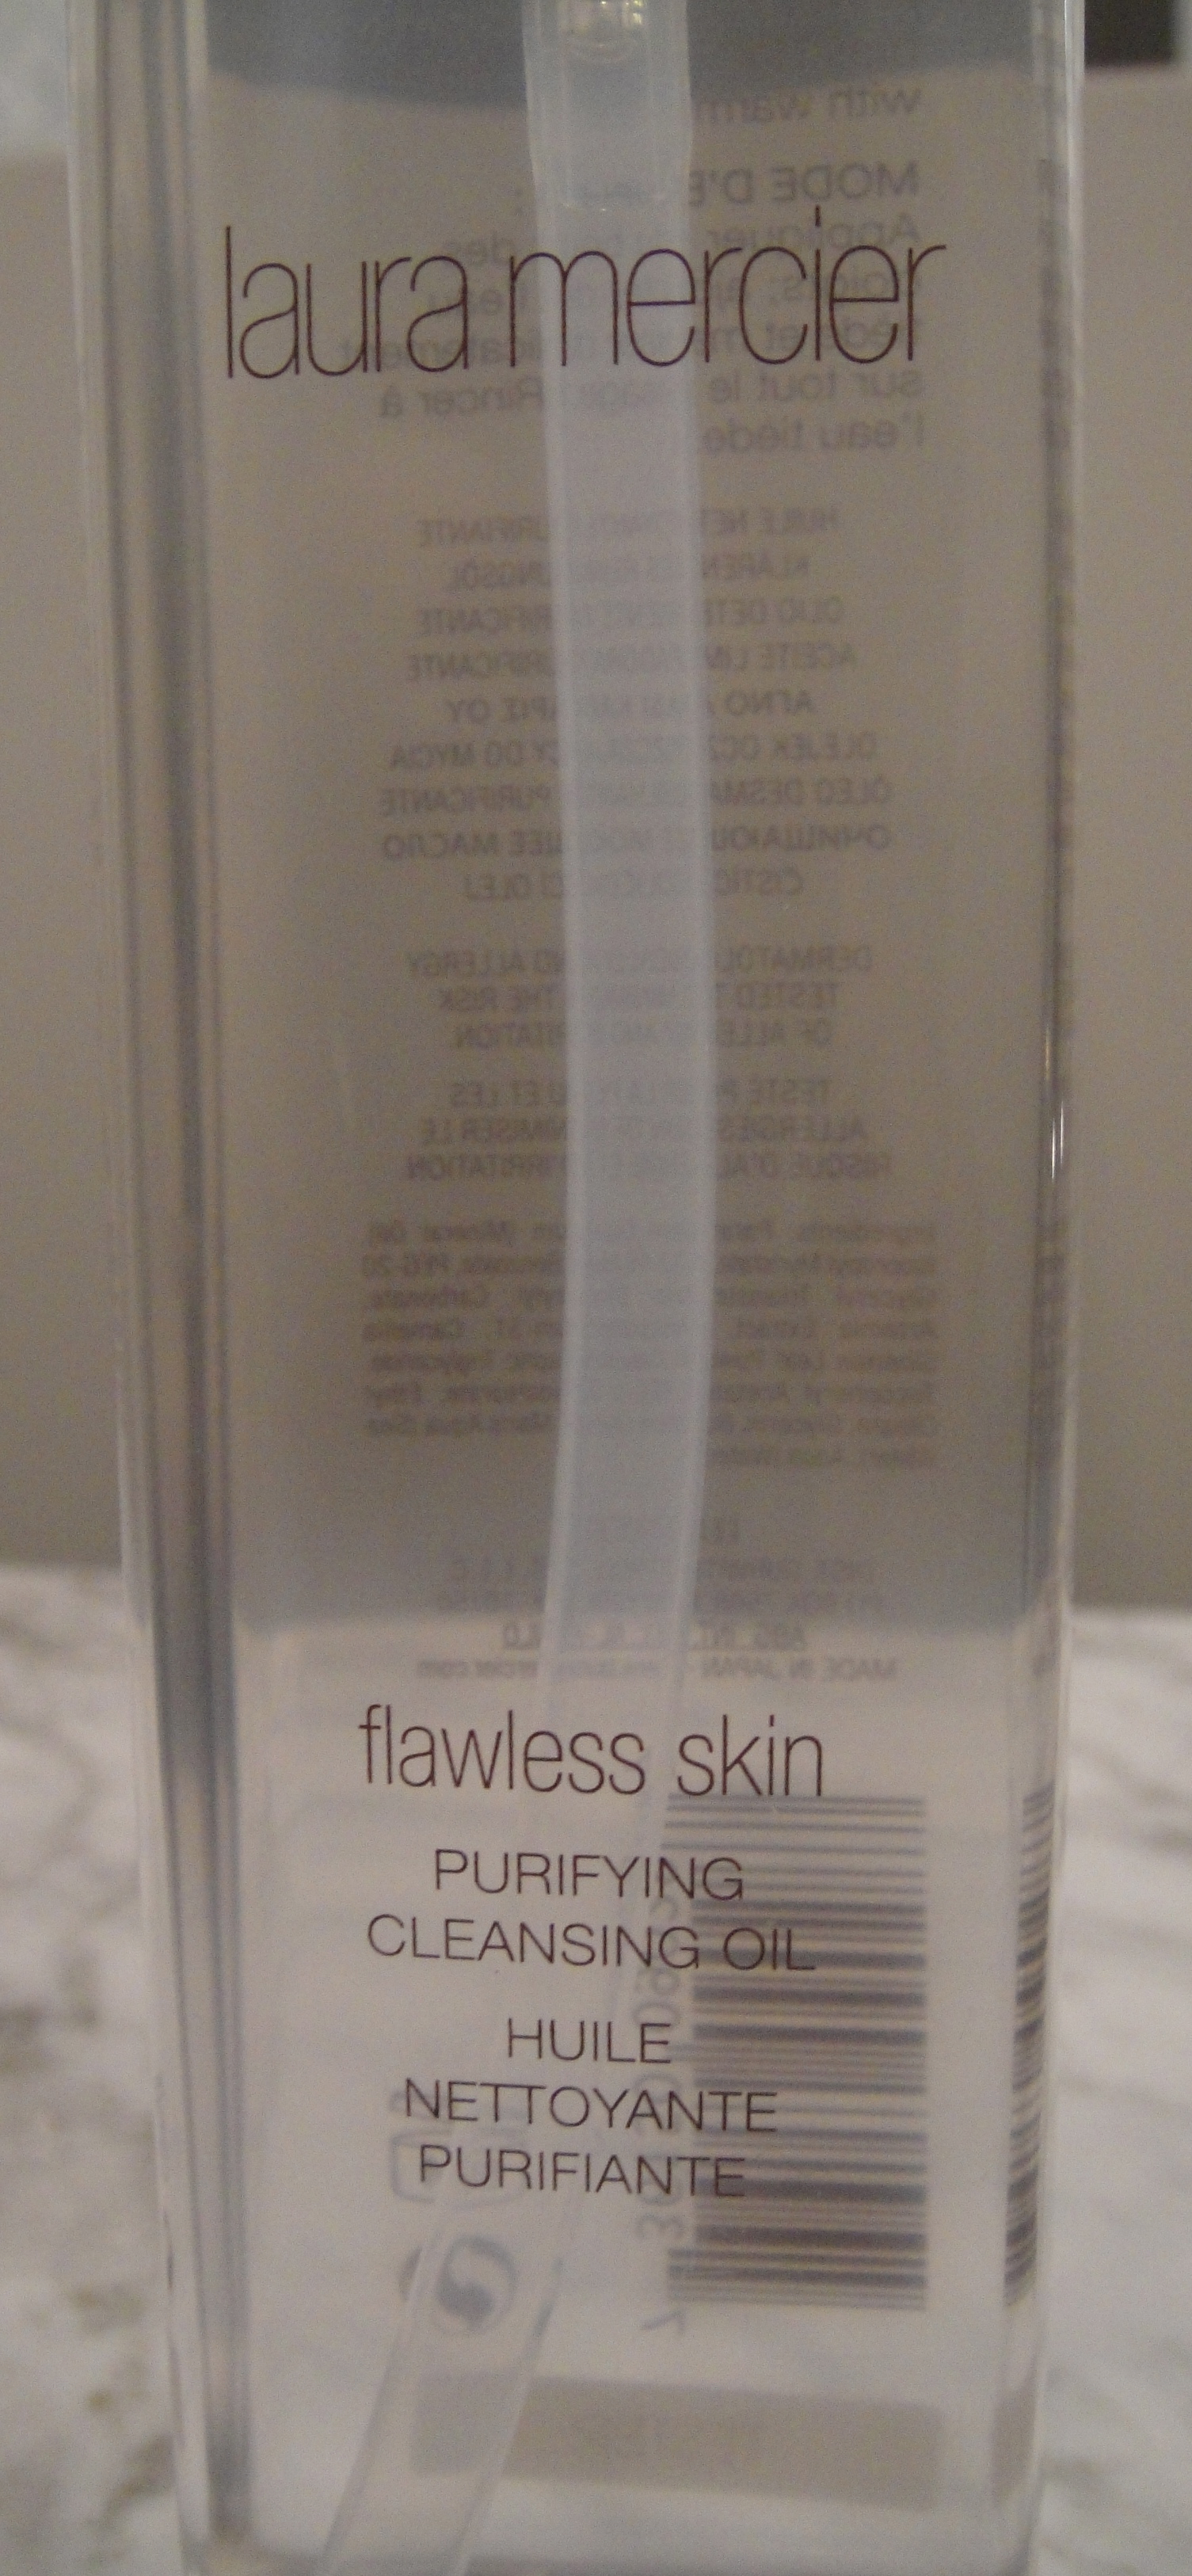 Step 1: Laura Mercier, Flawless Skin Purifying Cleansing Oil